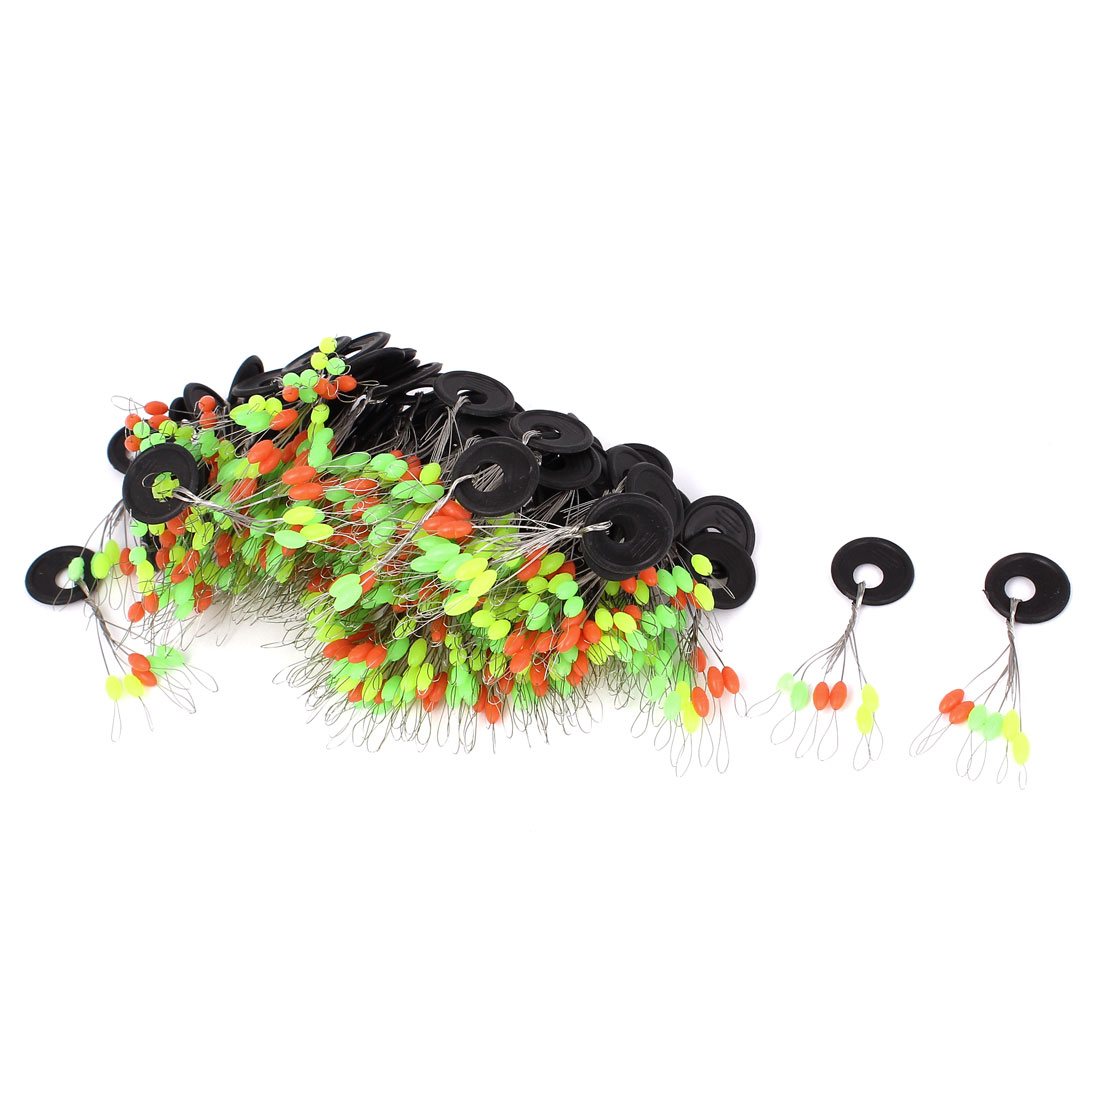 100Pcs Plastic Round Ring Oval Float Fishing Bobber Stopper Multicolor